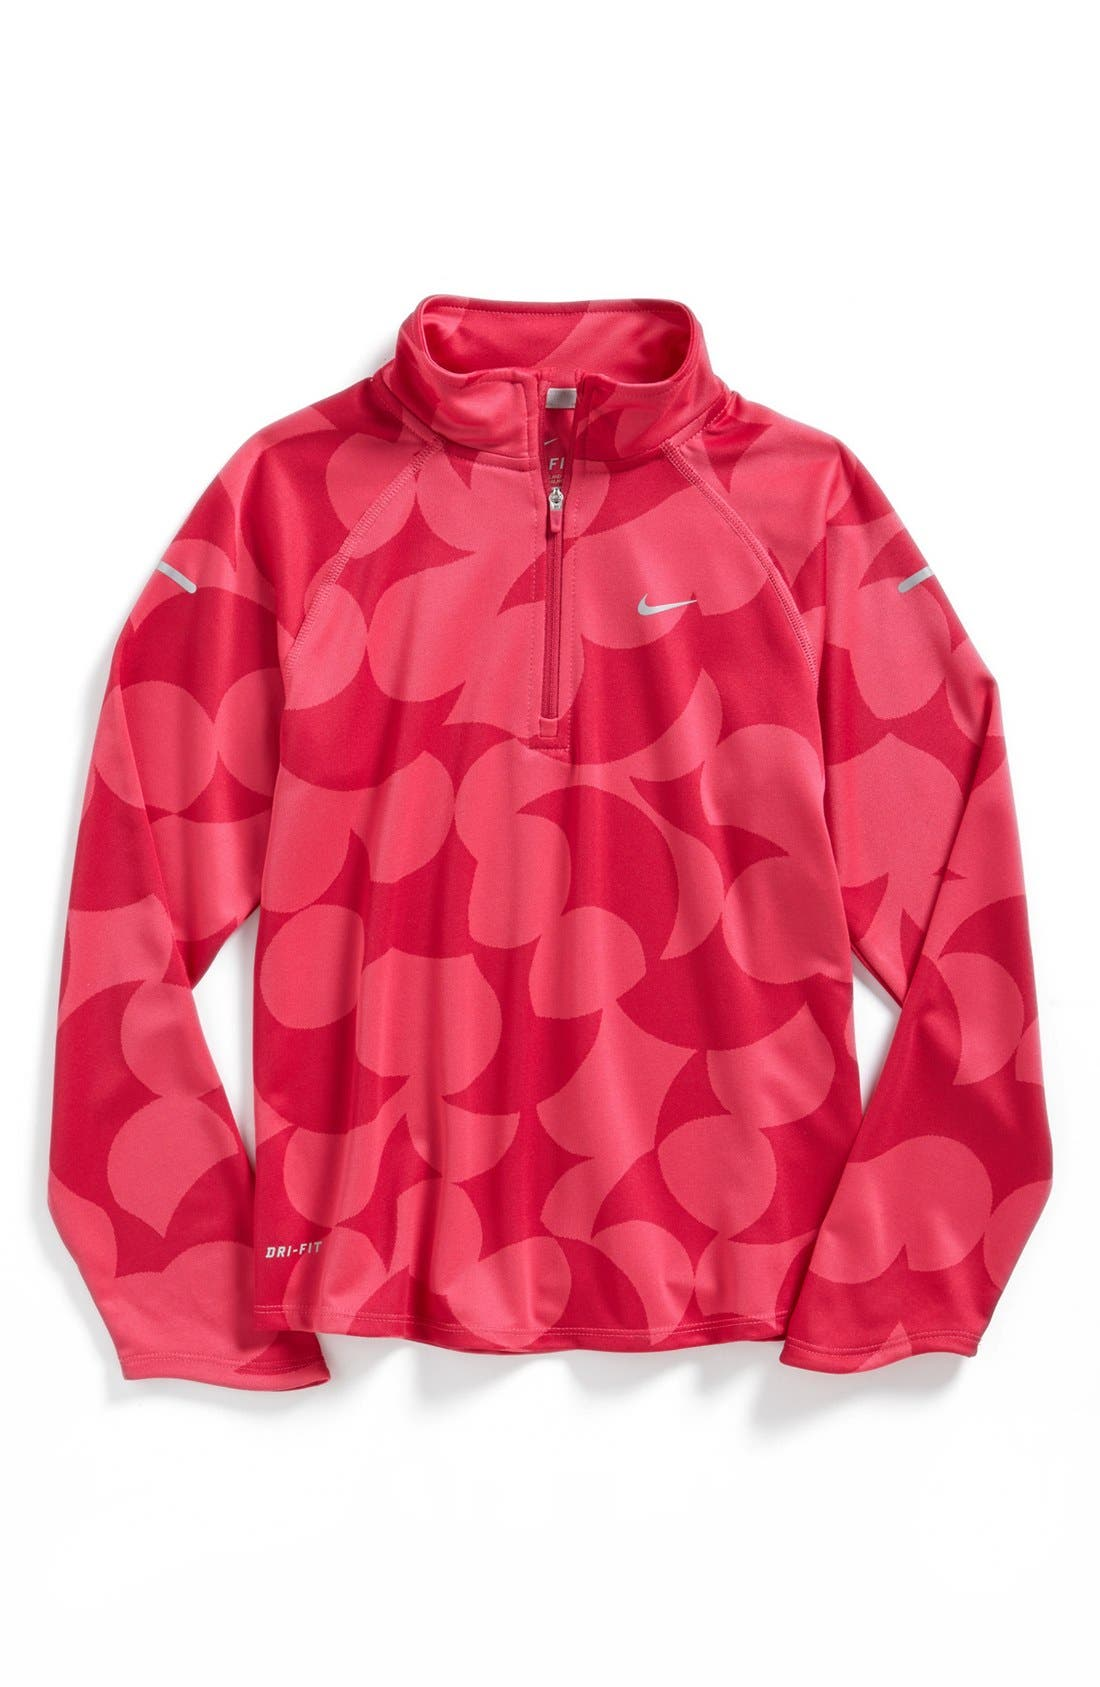 Alternate Image 1 Selected - Nike 'Element' Dri-FIT Half Zip Running Top (Big Girls)